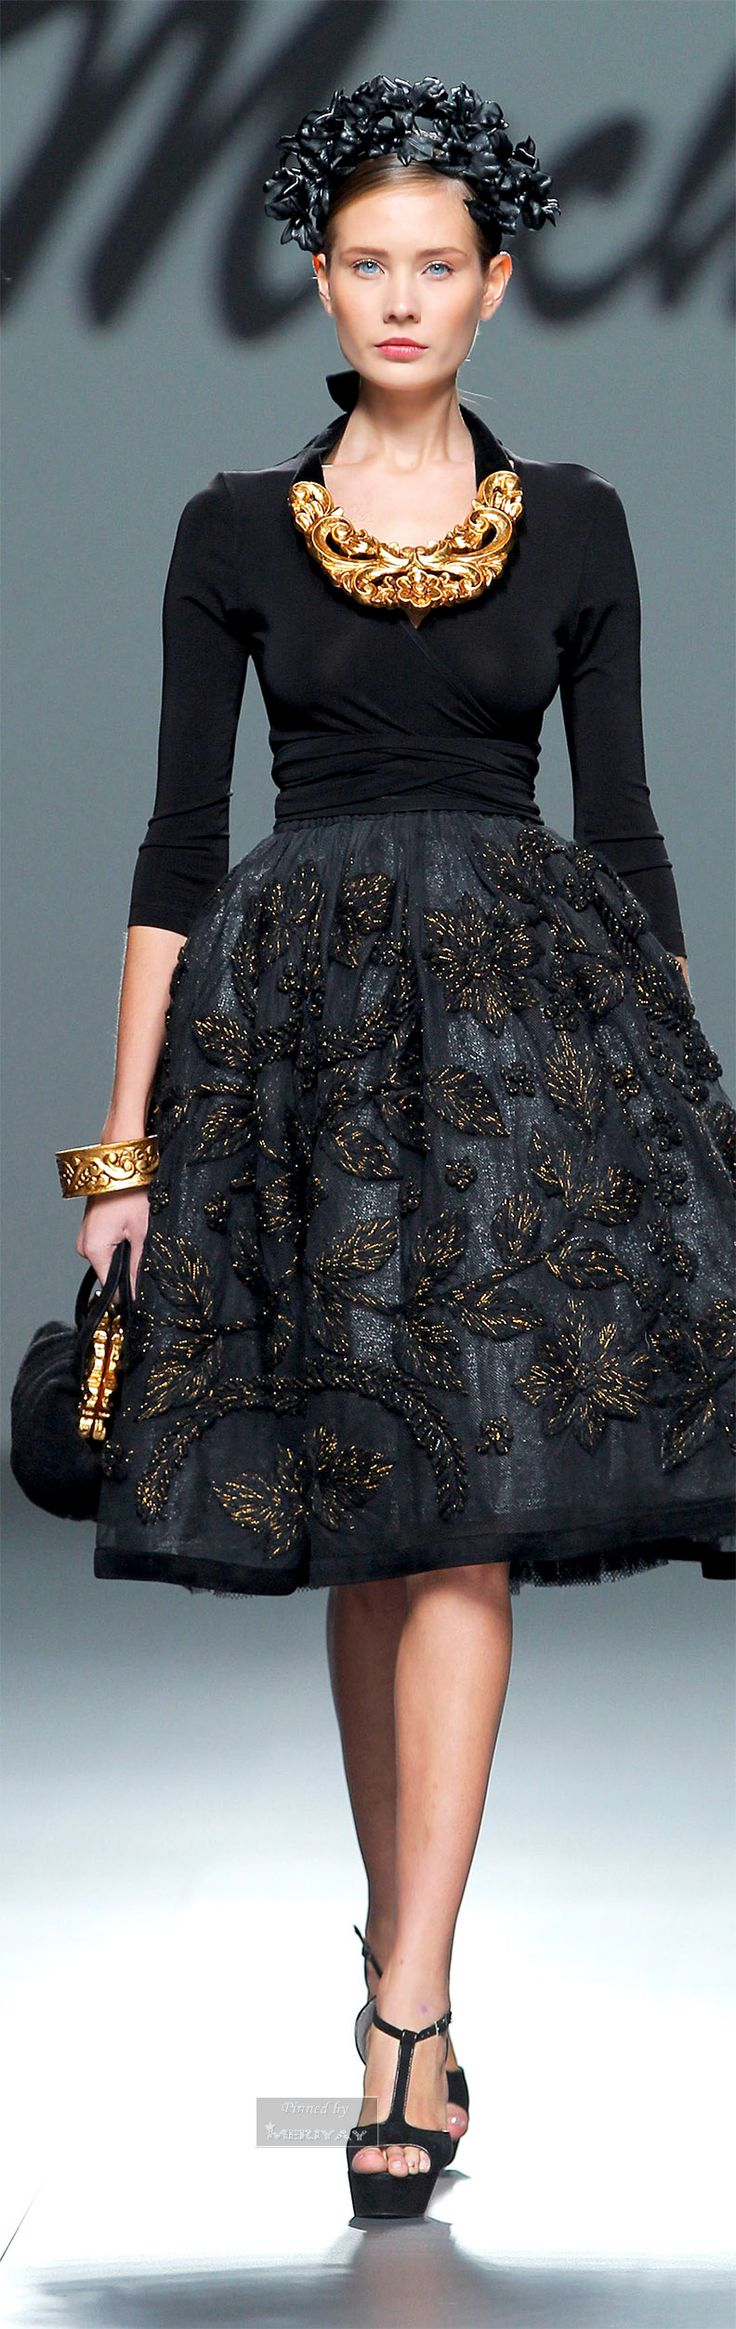 Dolce & Gabbana ~ Fitted Black Bodice Dress w Embroidered Pleated Full Skirt 2015